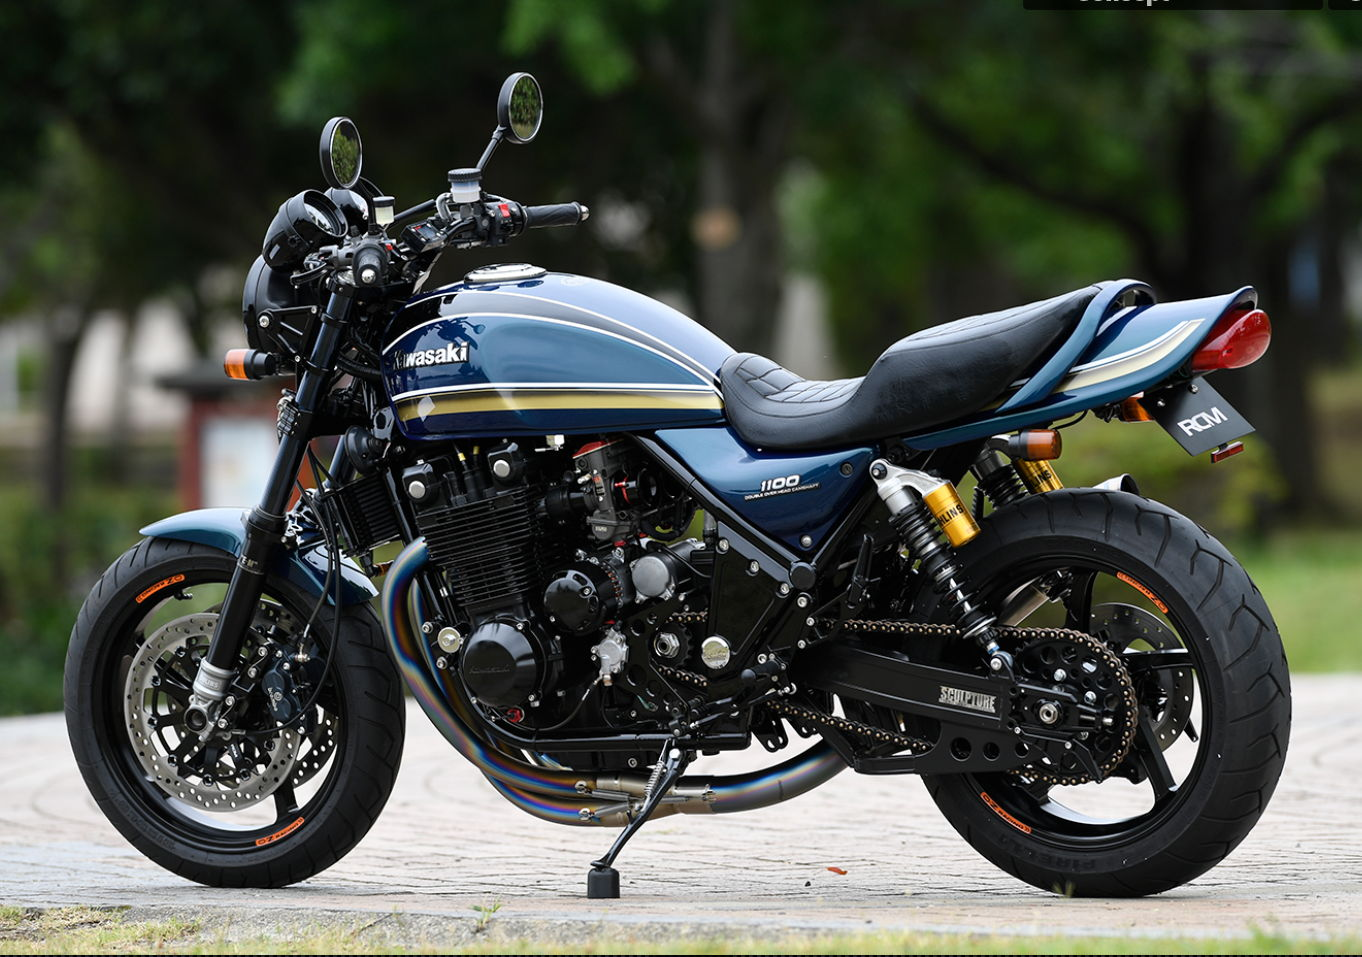 Why Don T We See More Japanese Heritage Models Motorcycledaily Com Motorcycle News Editorials Product Reviews And Bike Reviews